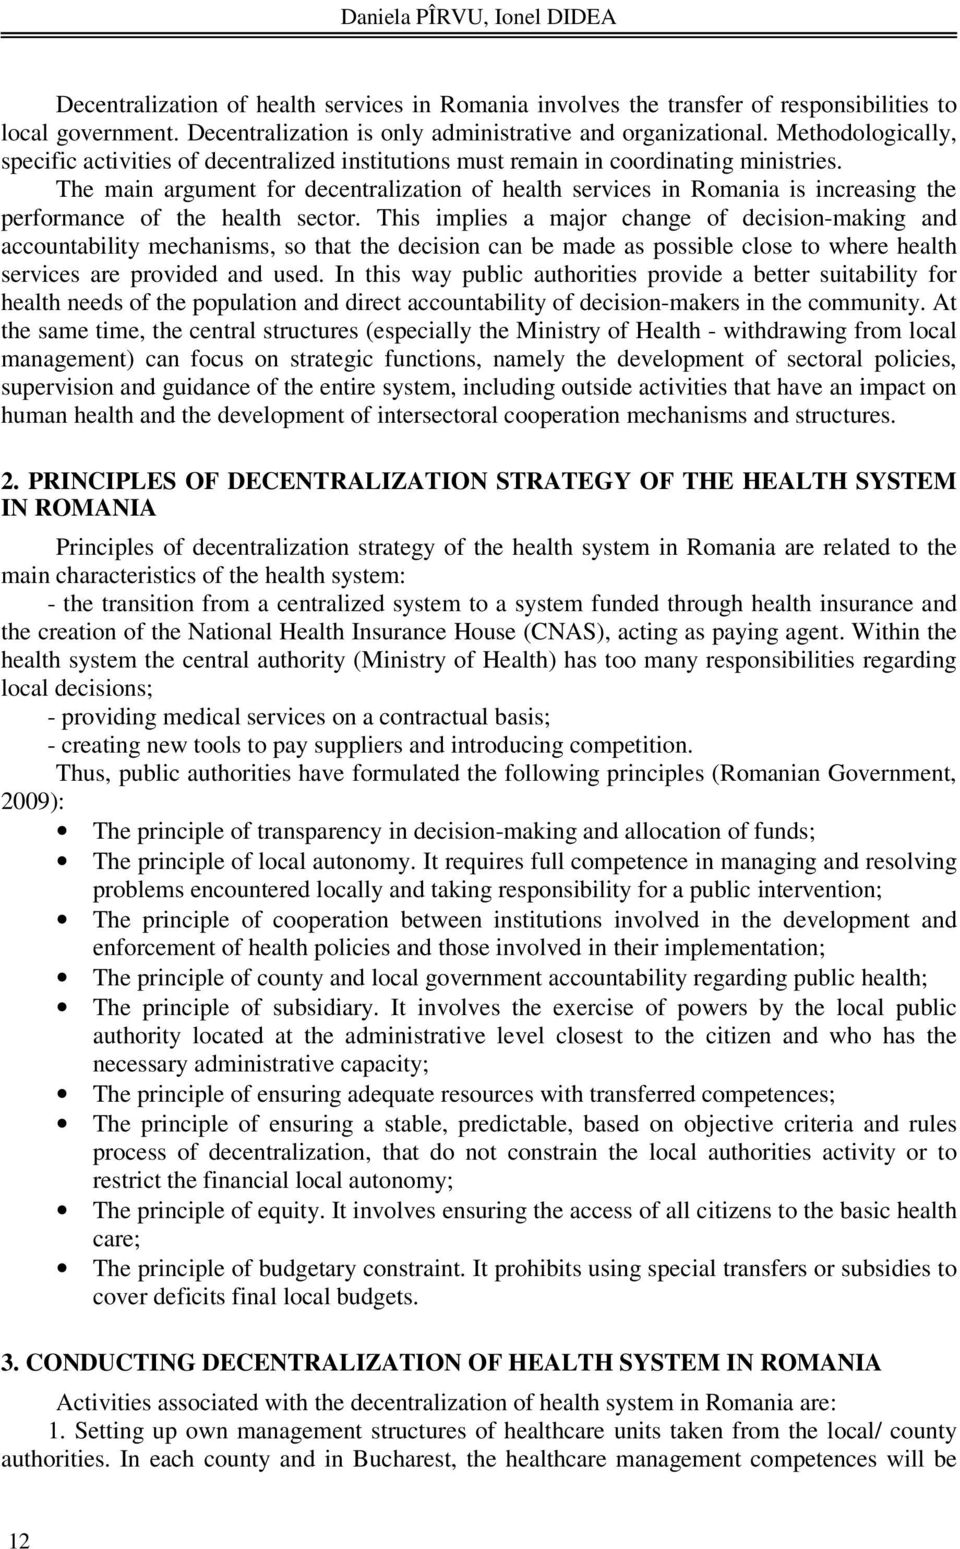 The main argument for decentralization of health services in Romania is increasing the performance of the health sector.